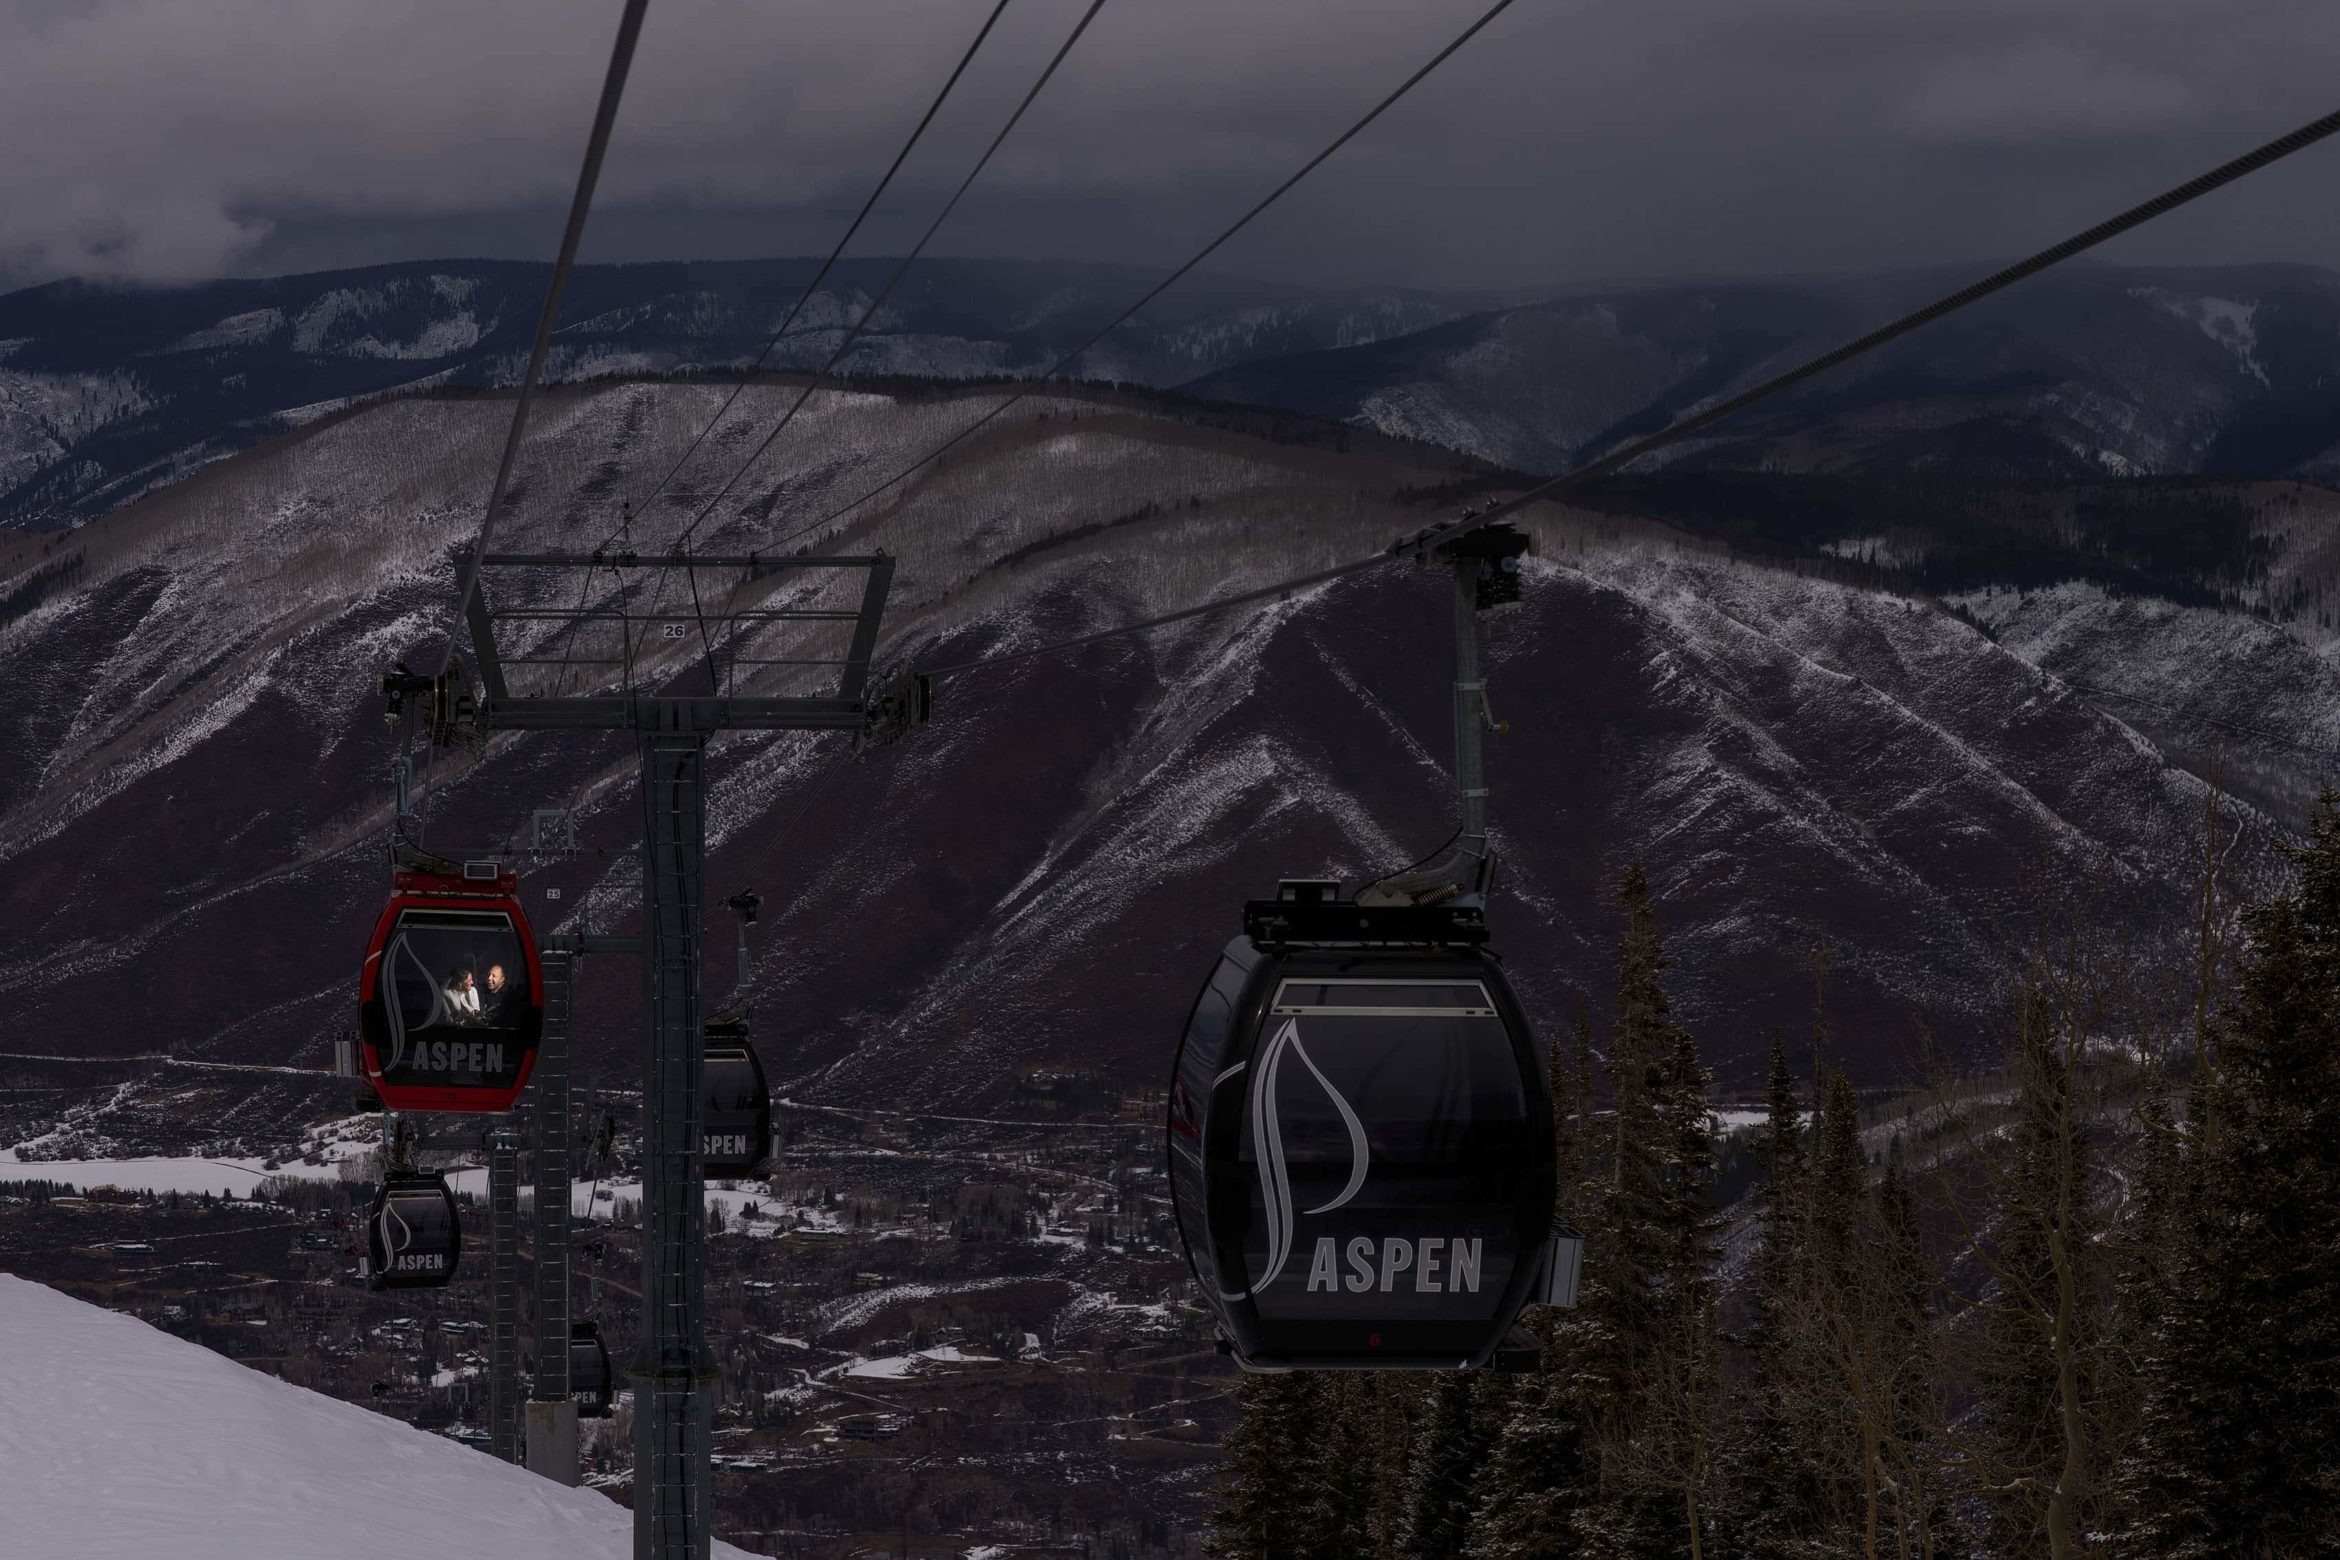 The bride and groom ride the Silver Queen Gondola during their winter micro wedding in Aspen